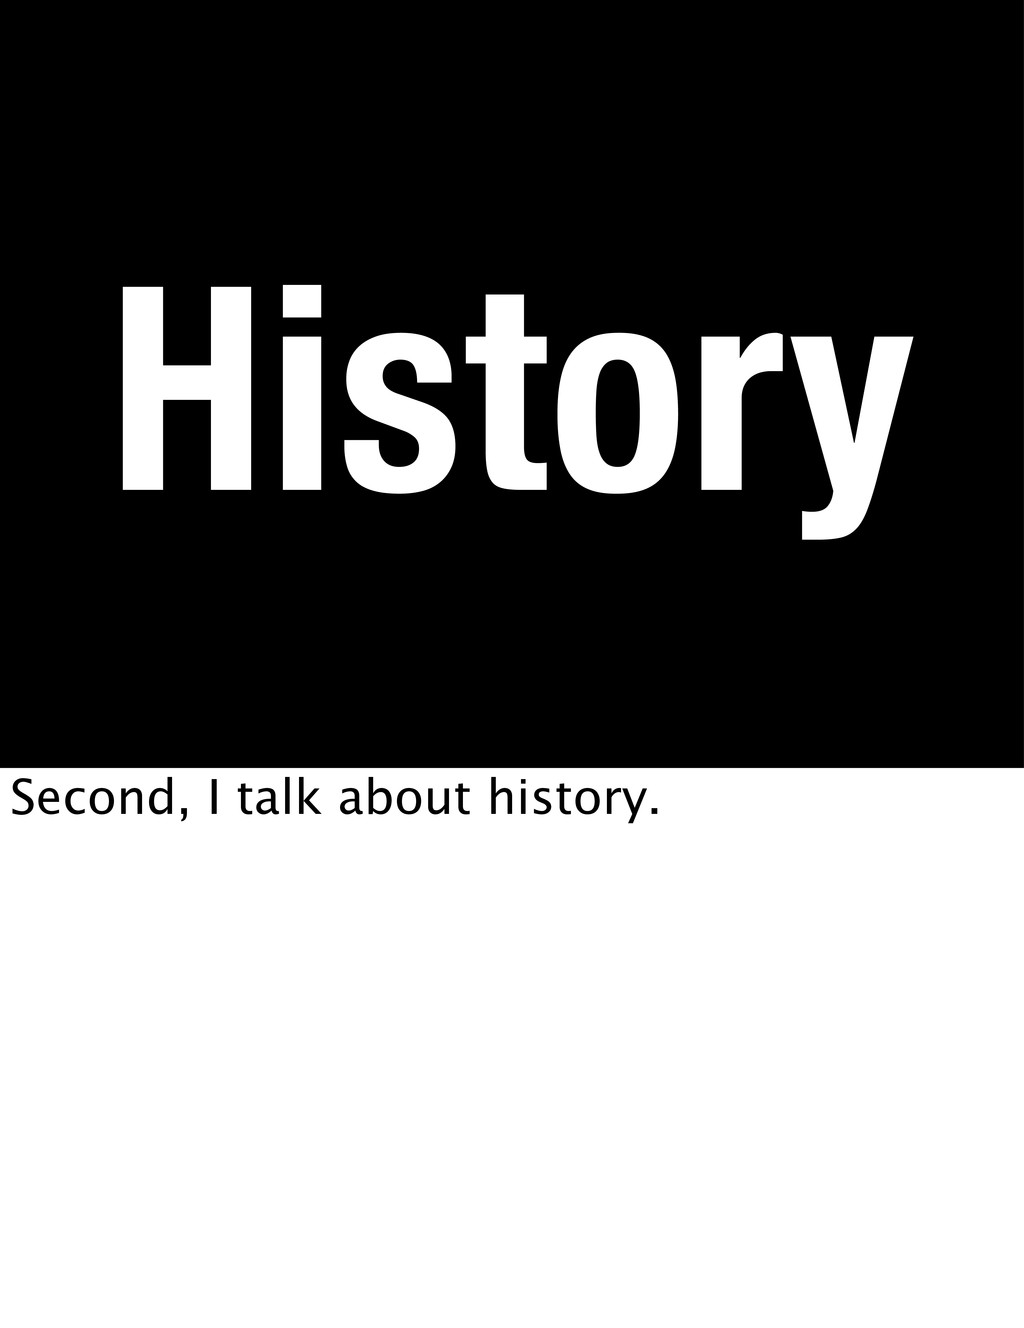 History Second, I talk about history.